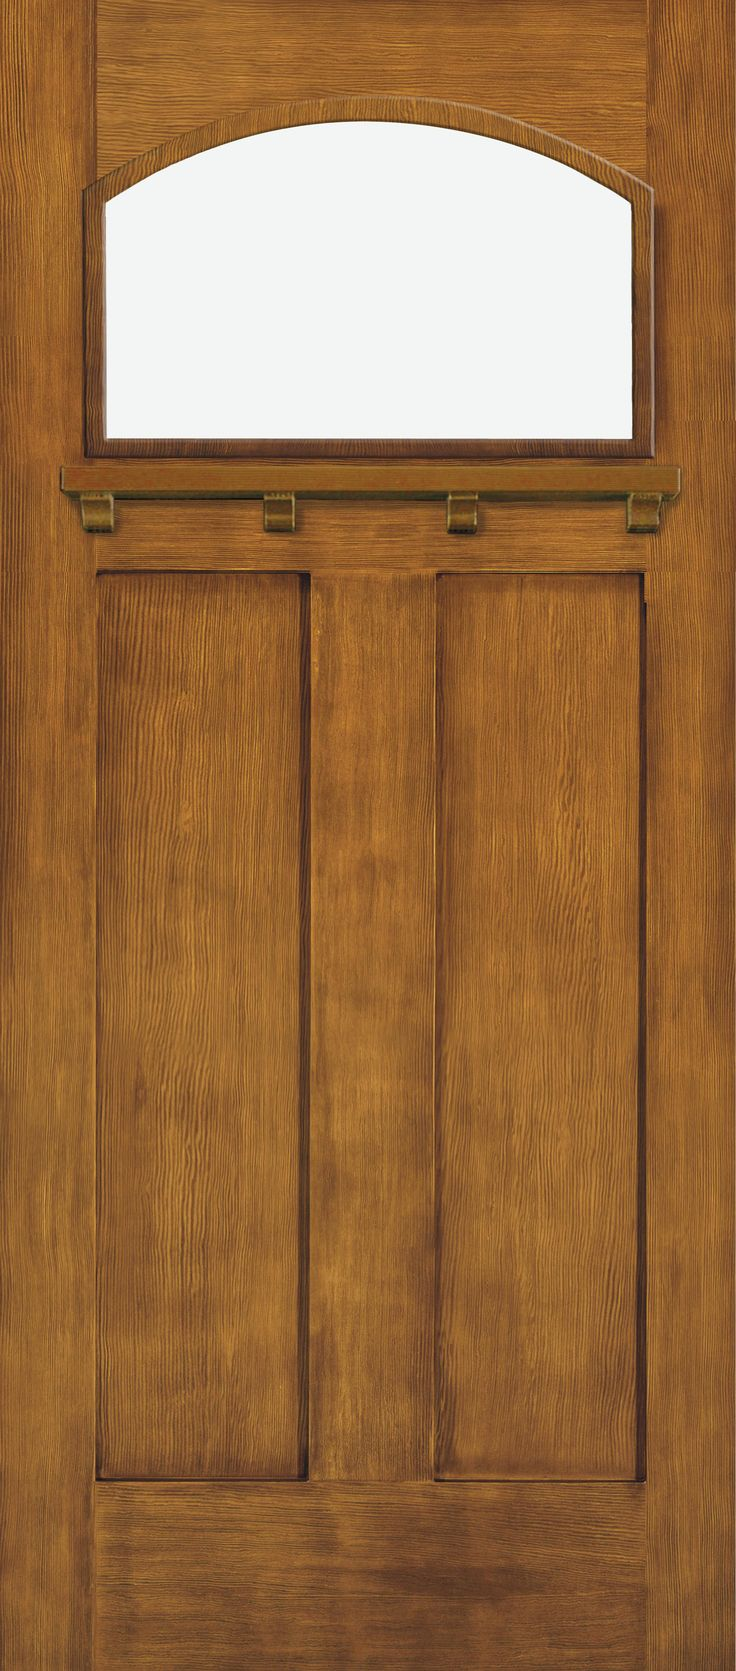 1000 Images About Front Door On Pinterest Doors Craftsman And Entry Doors